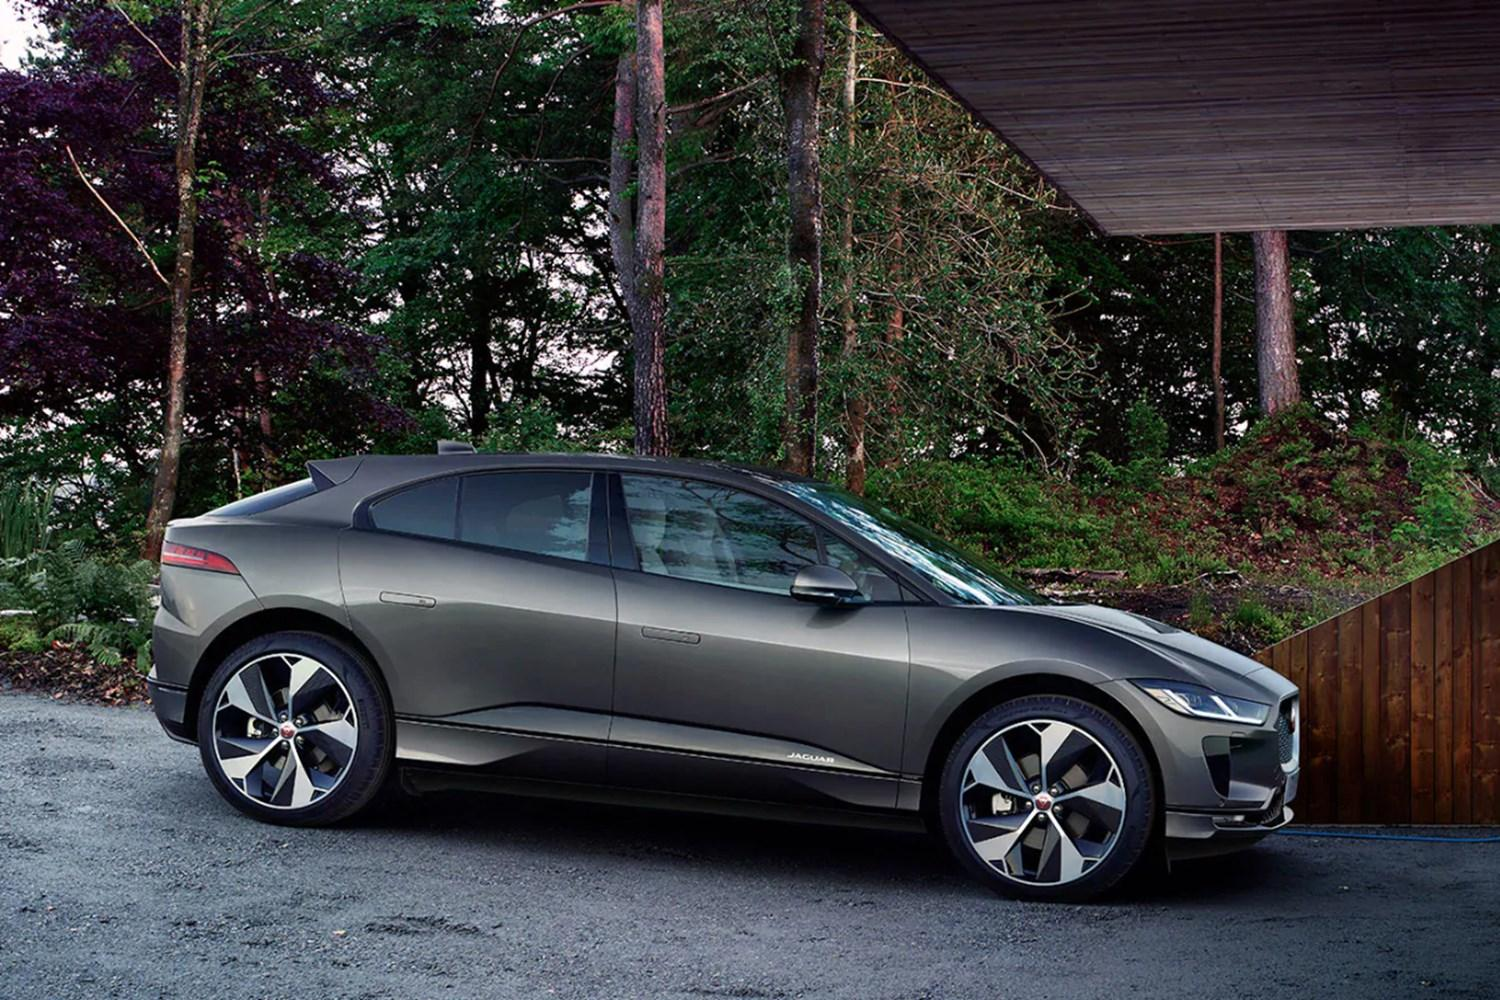 Grey Jaguar I-Pace side profile